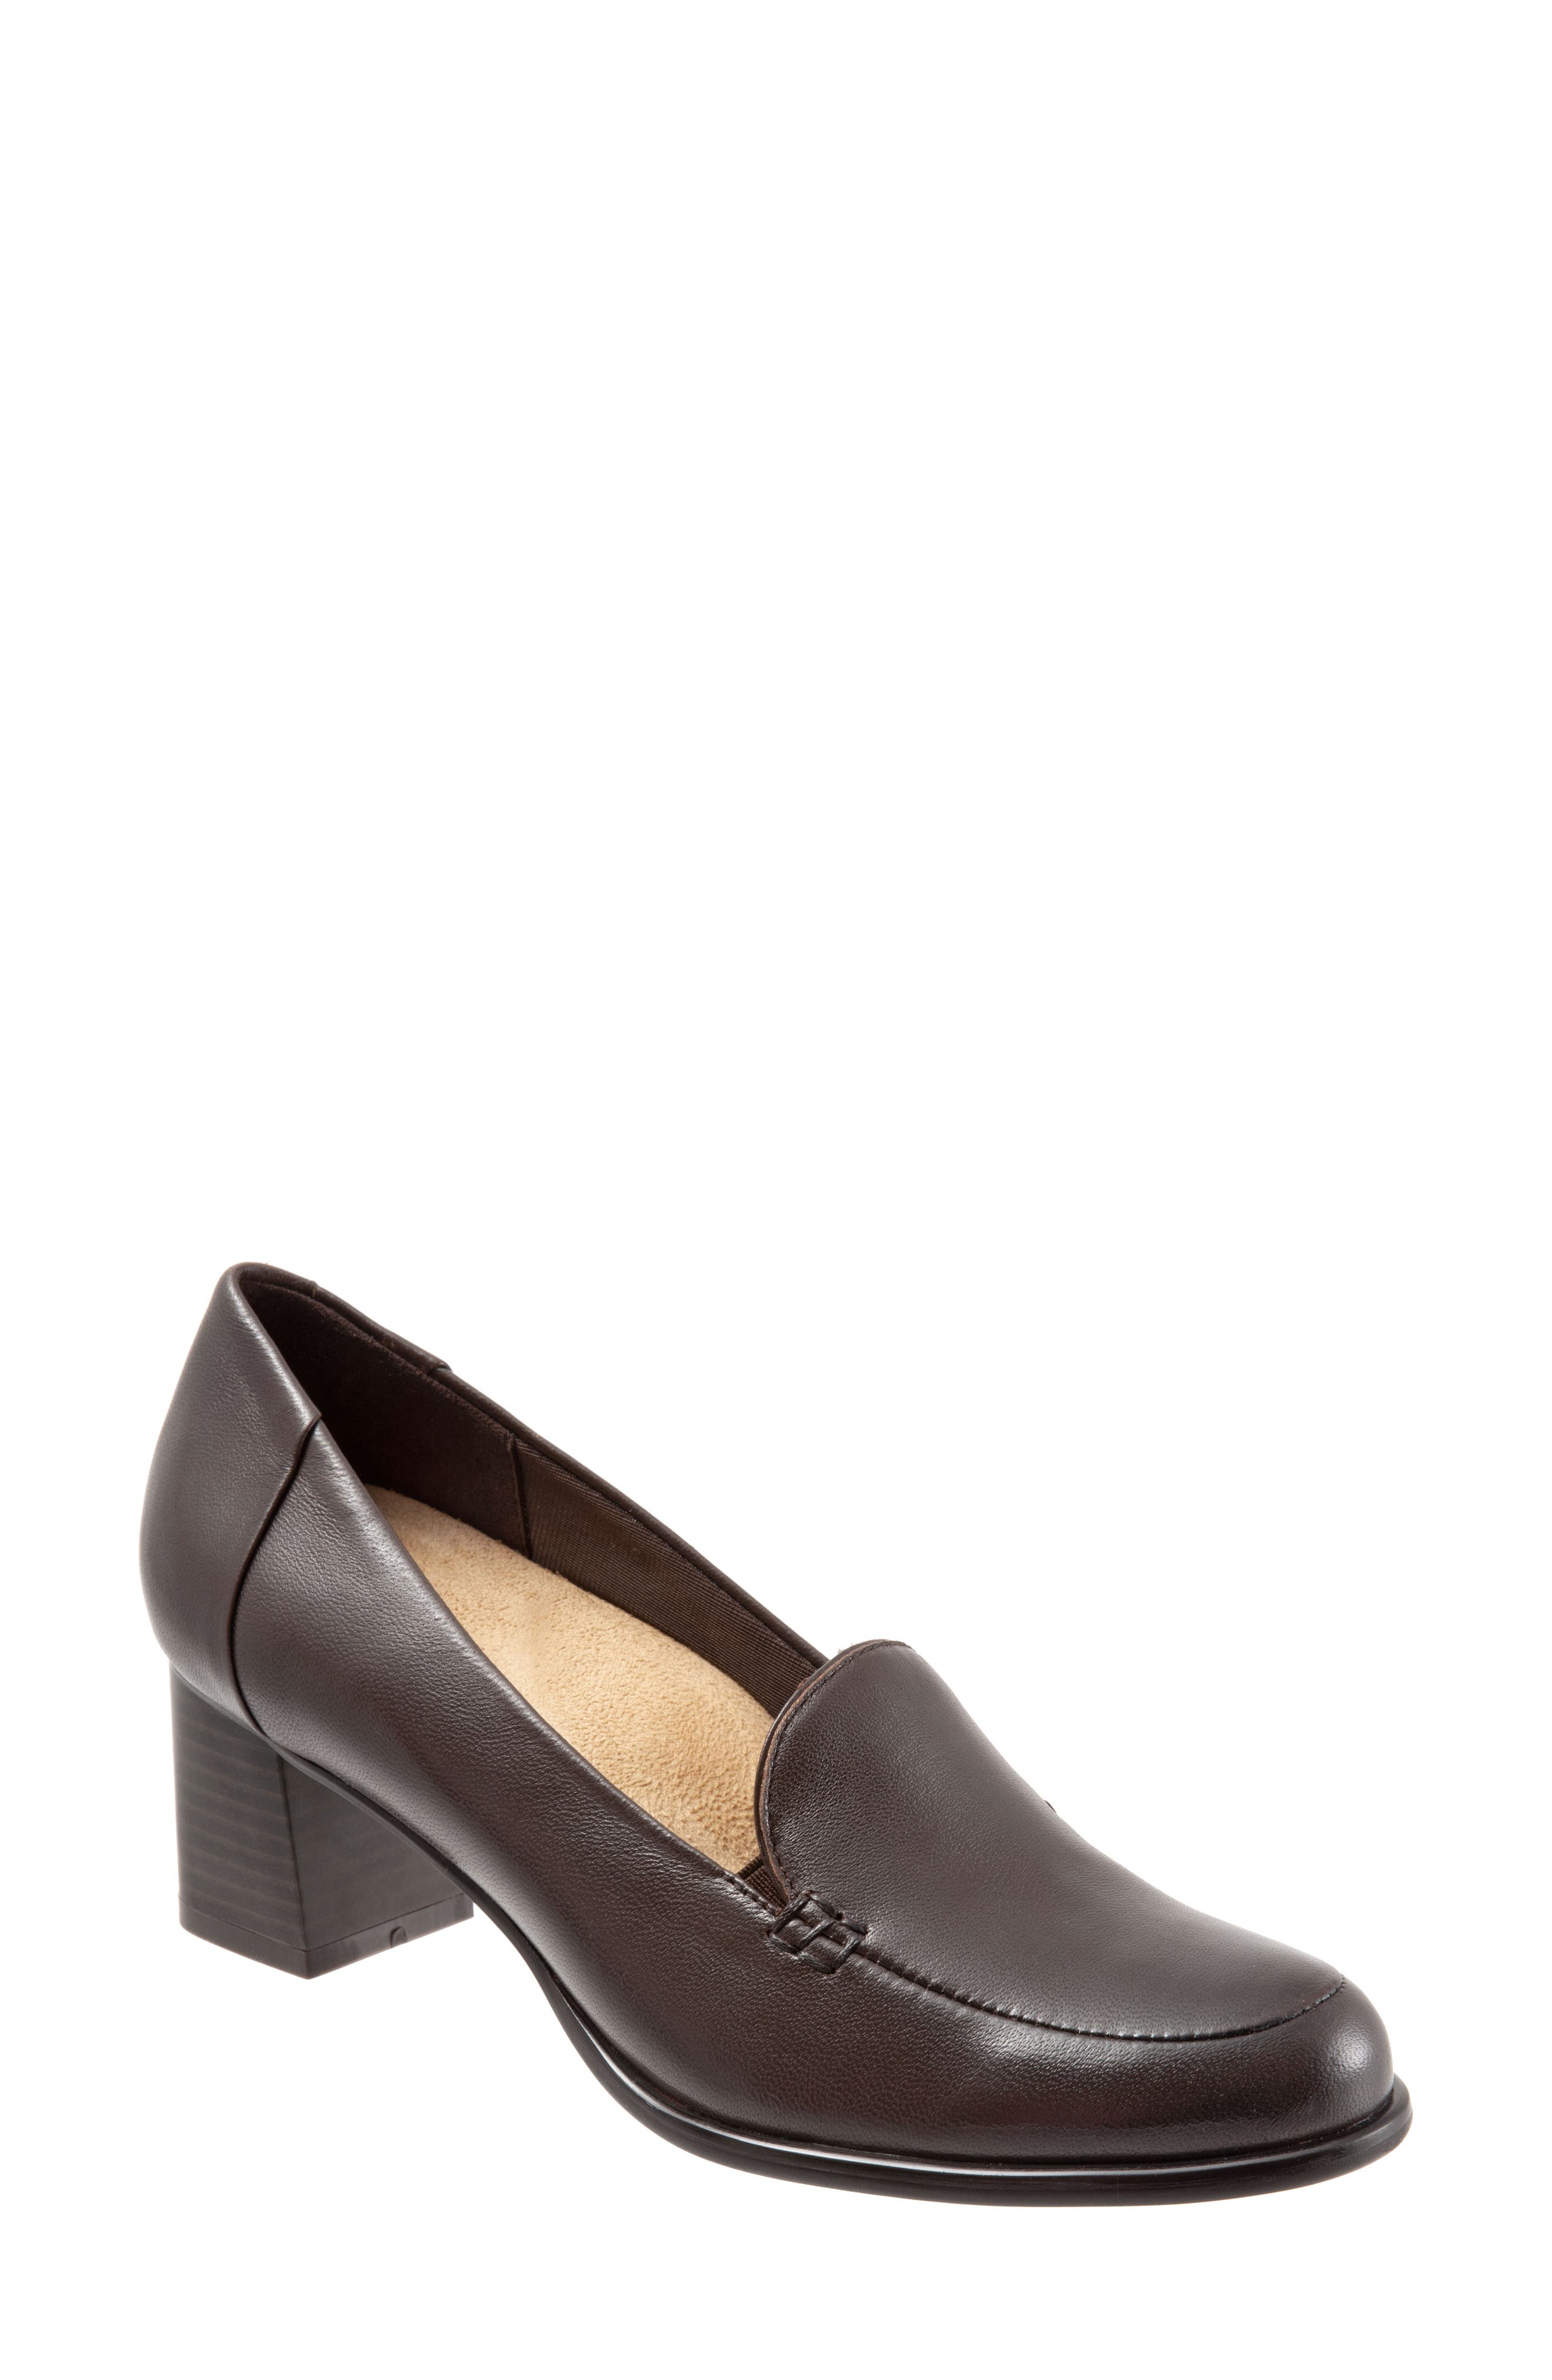 Quincy Loafer Pump,                             Main thumbnail 1, color,                             DARK BROWN LEATHER